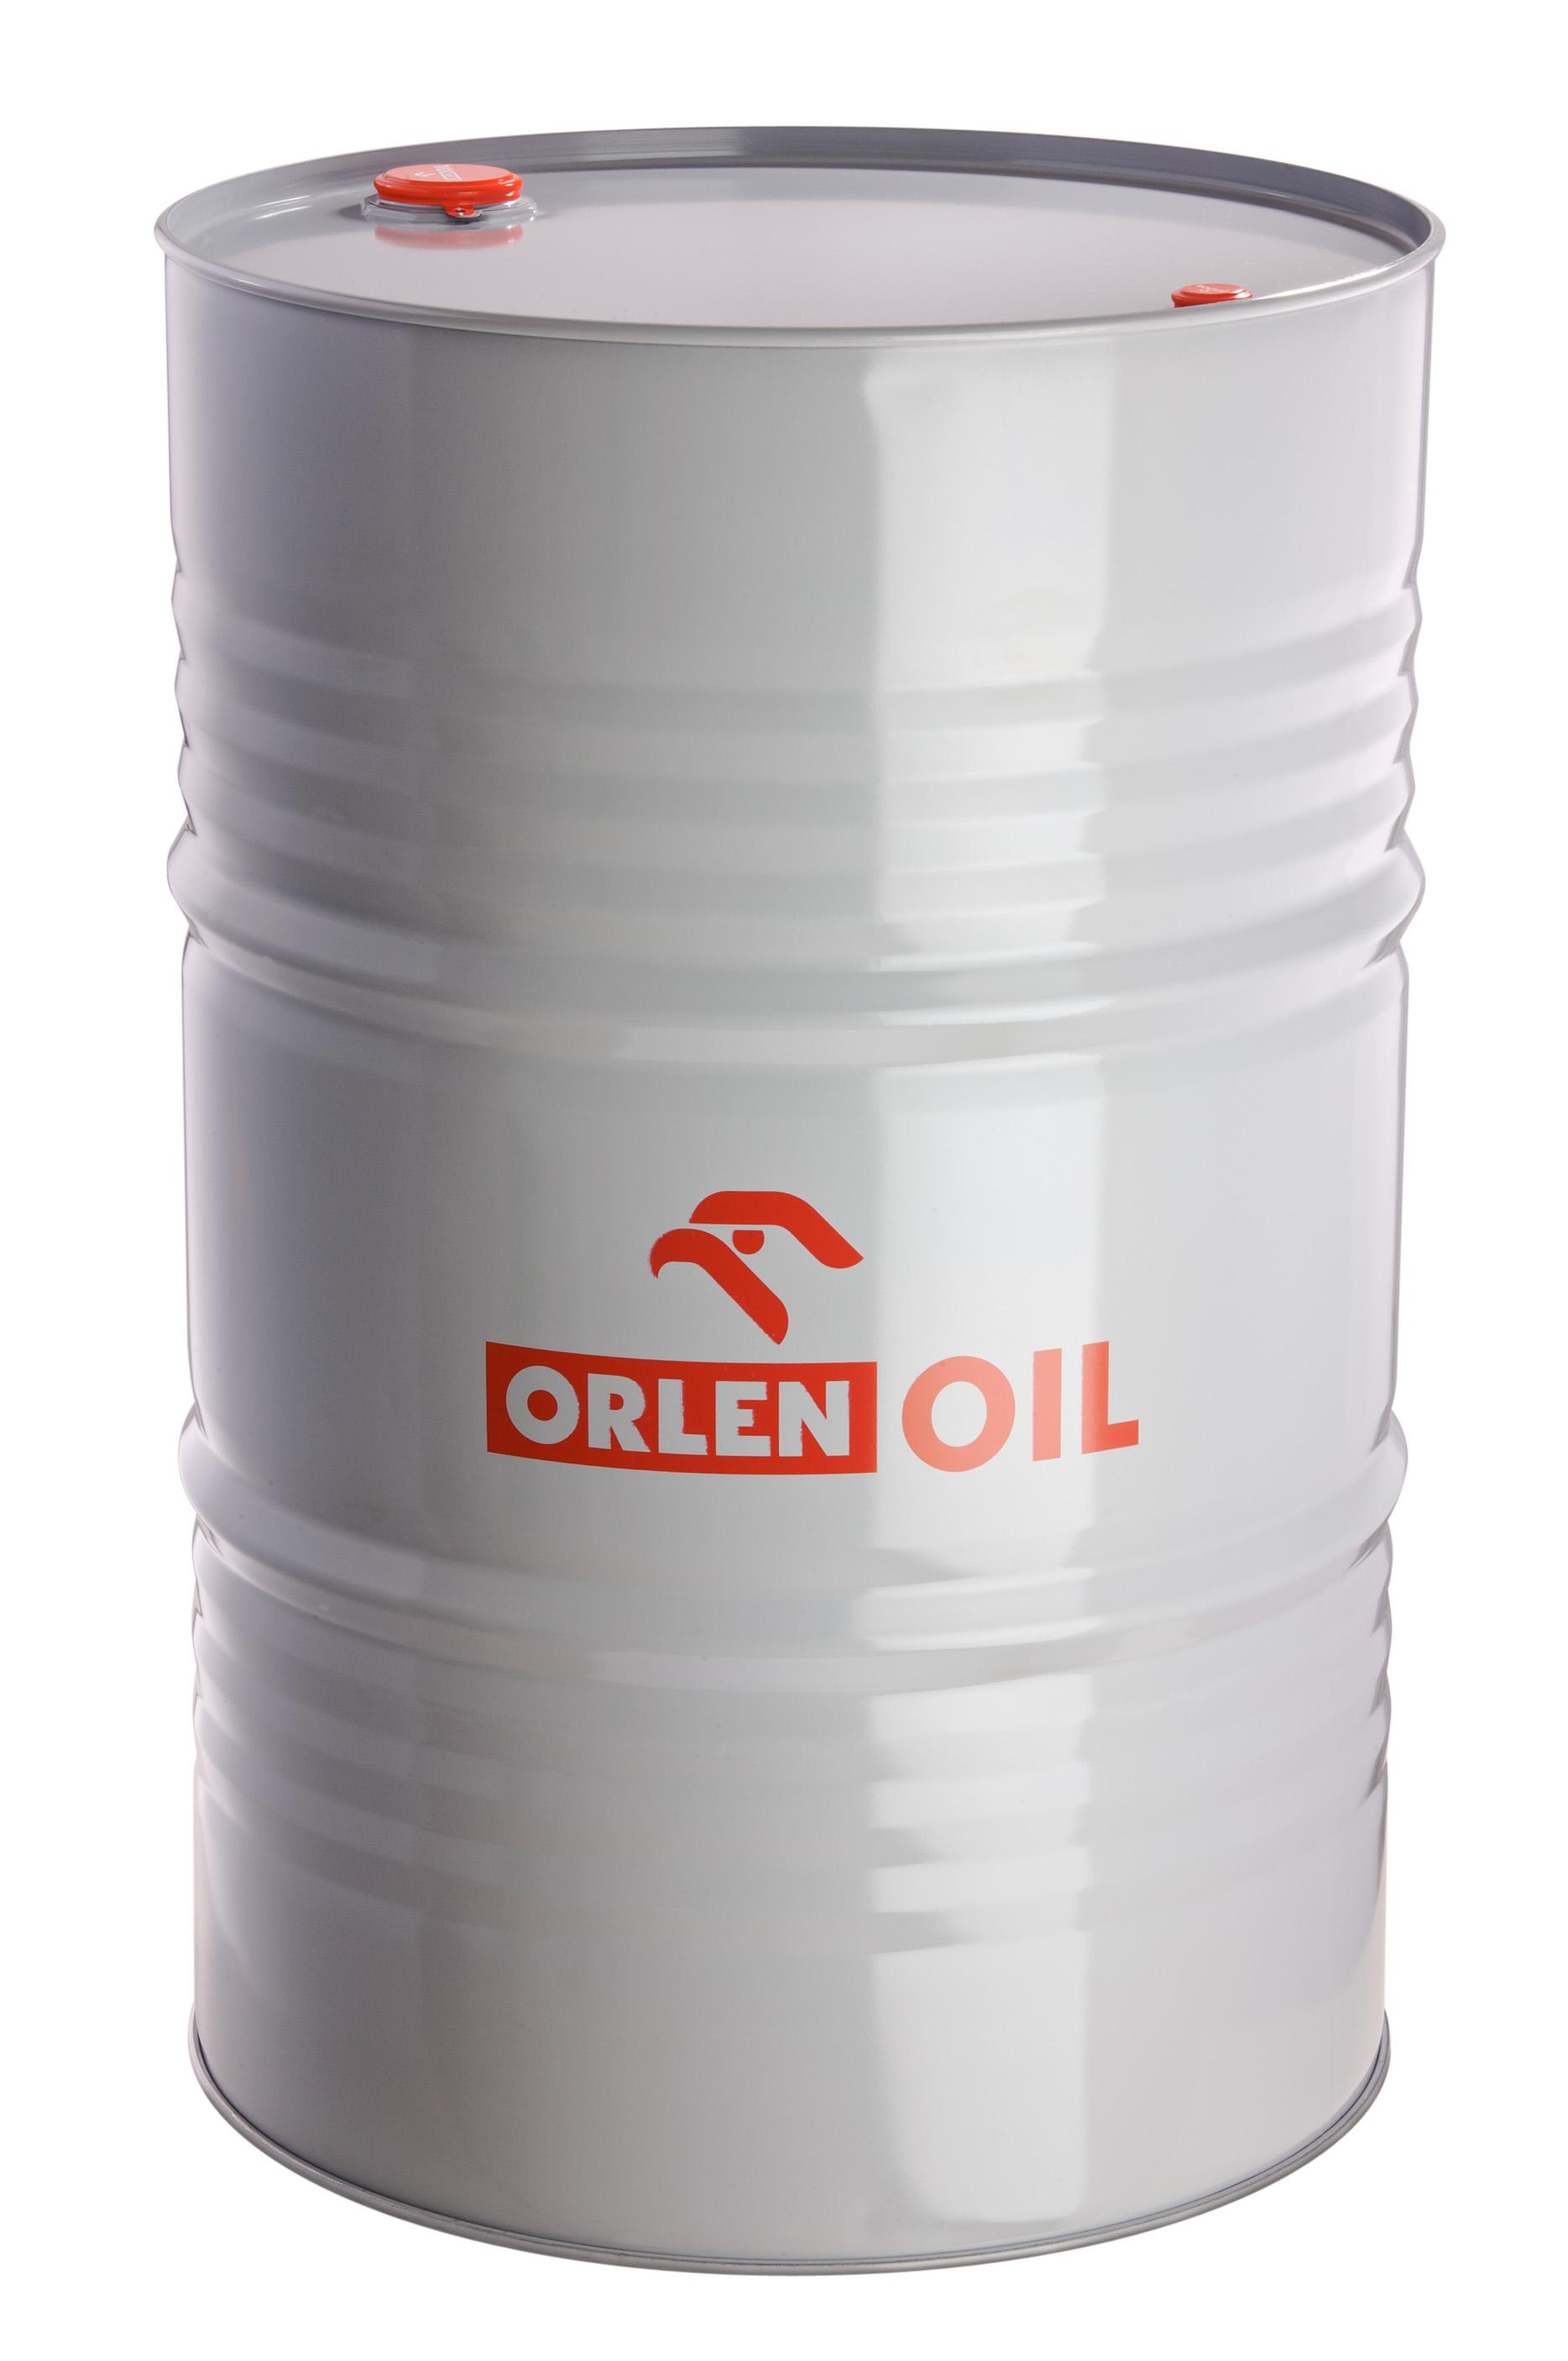 ORLEN OIL GREASEN GRAFIT   DRUMS 180KG